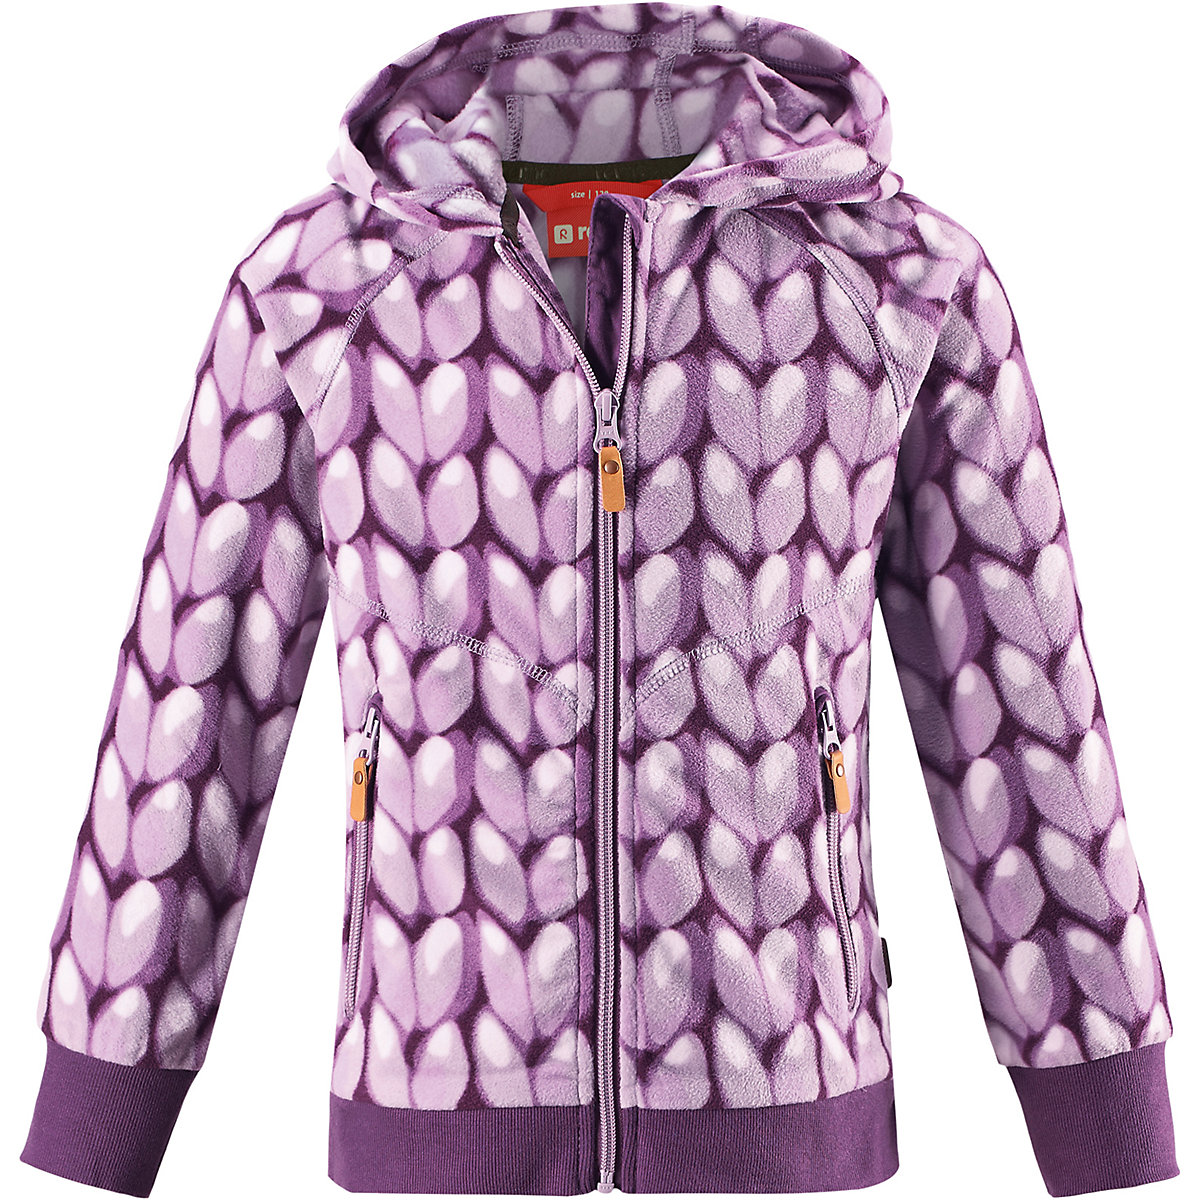 REIMA Sweaters 8689677 For girls Polyester warm winter children clothing girl Suit jacket